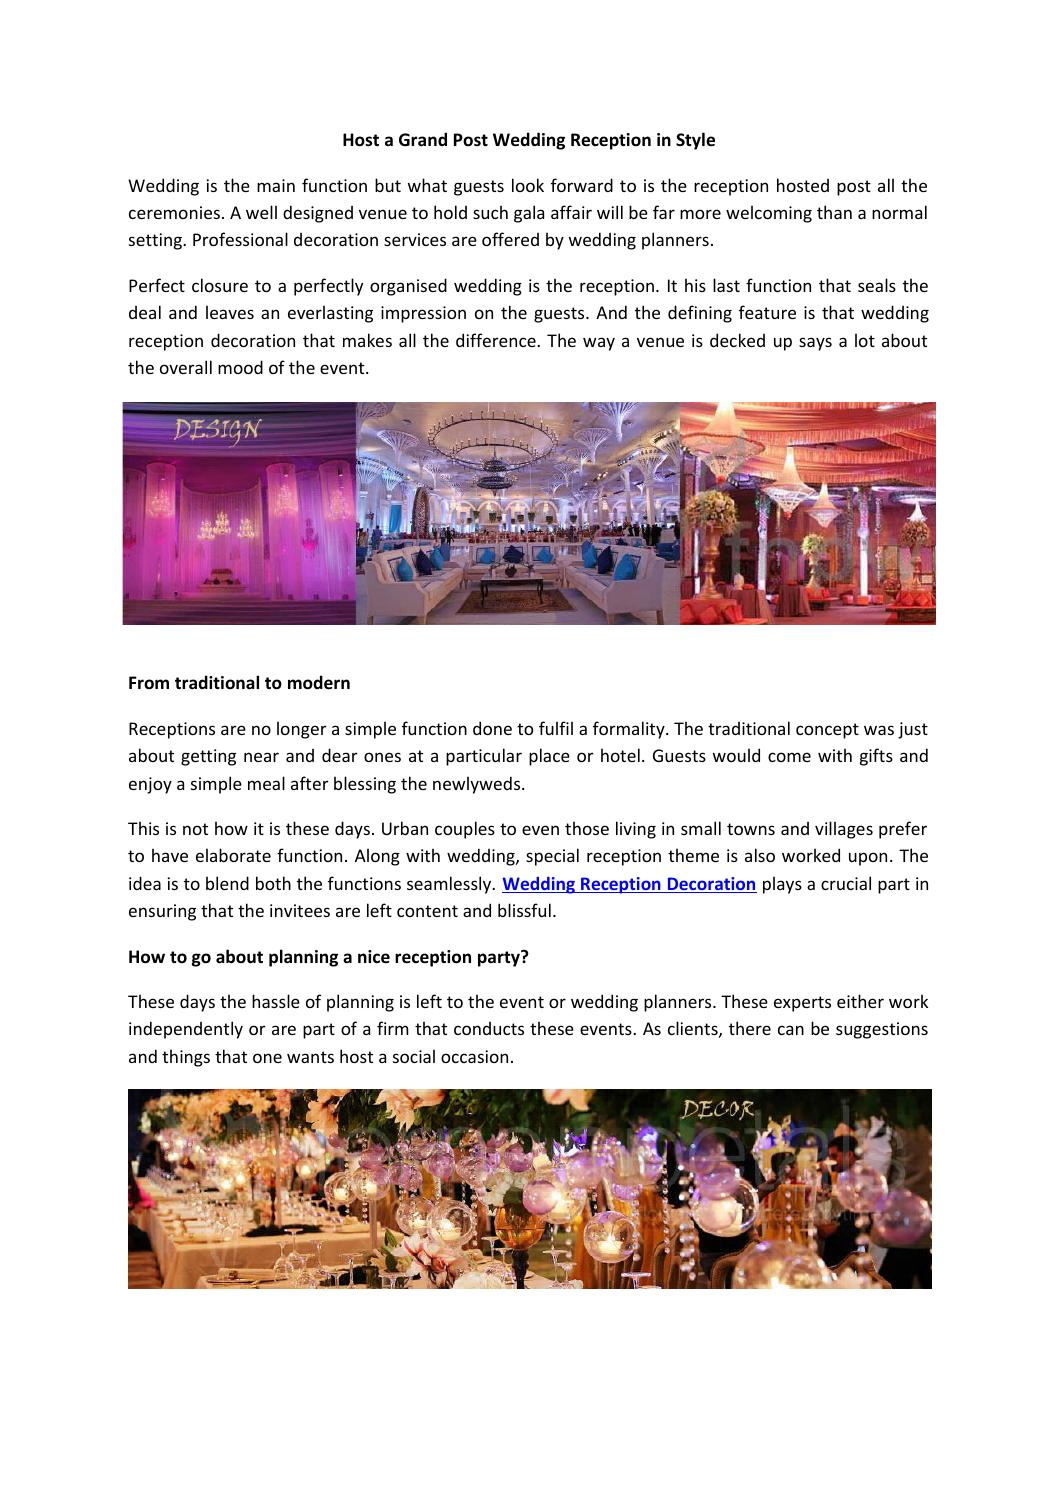 Host A Grand Post Wedding Reception In Style By Fnp Weddings Issuu